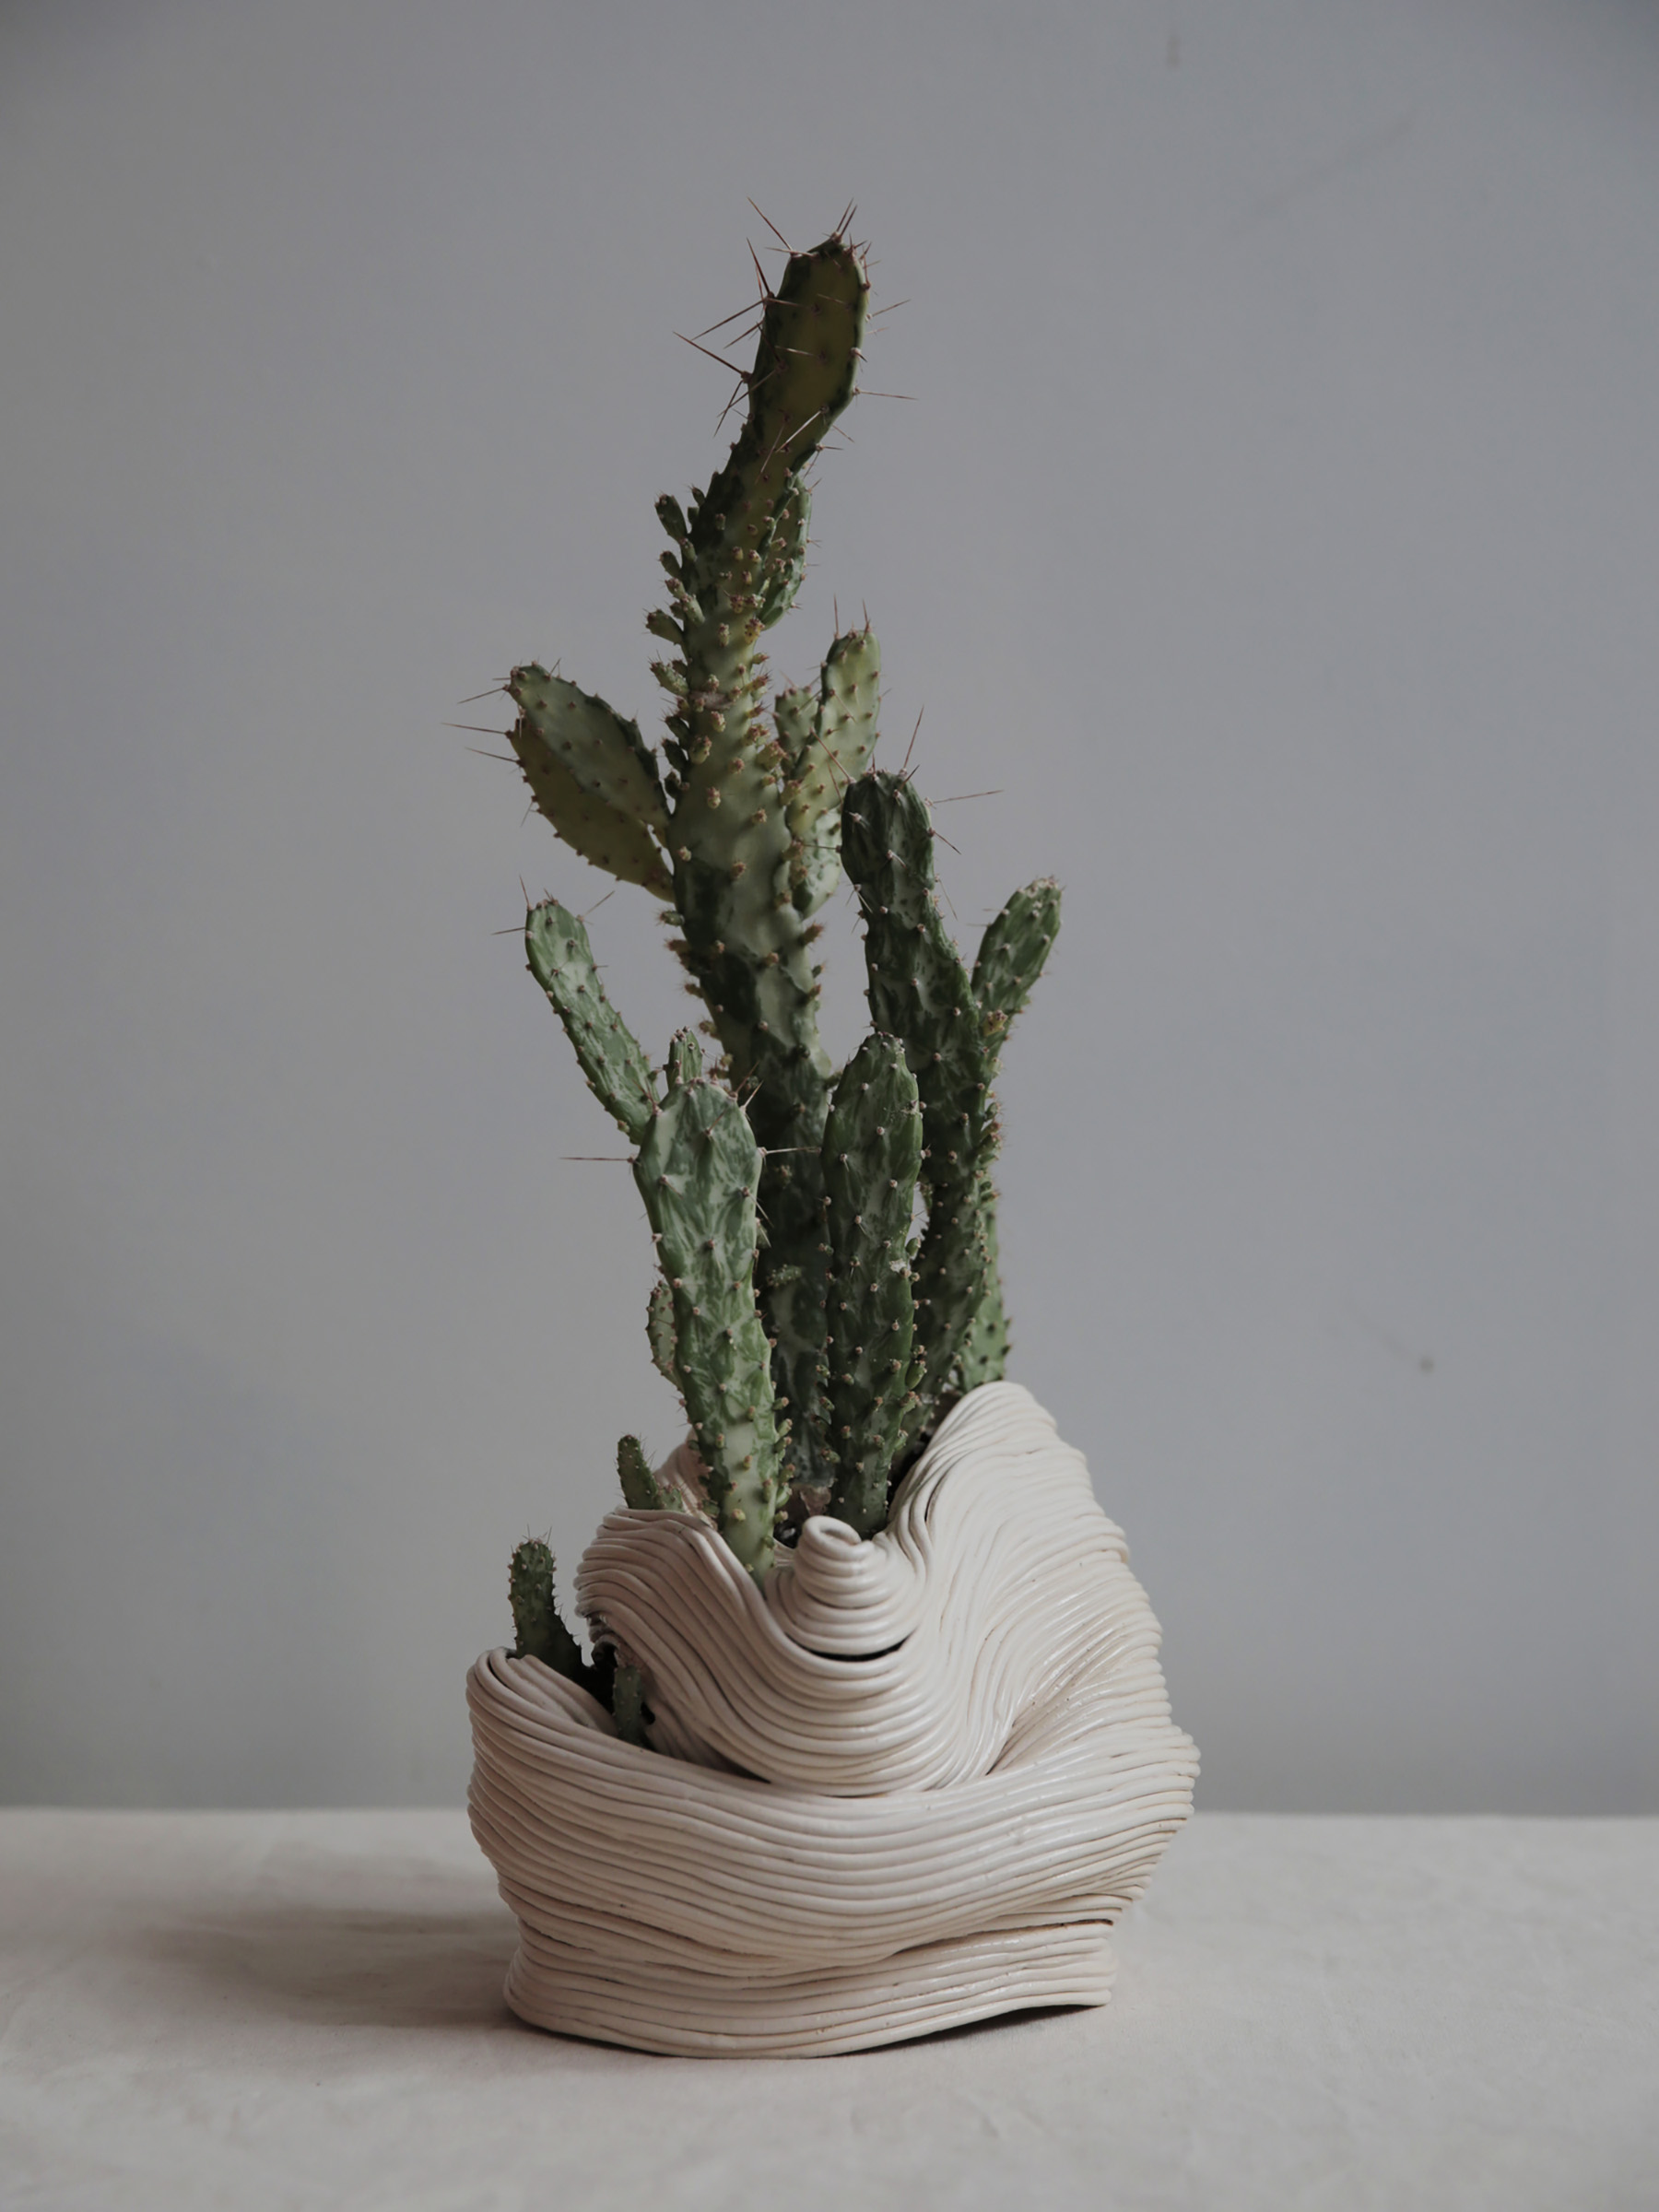 Beautifully Imperfect Ceramic Plant Vessels (6 pics)